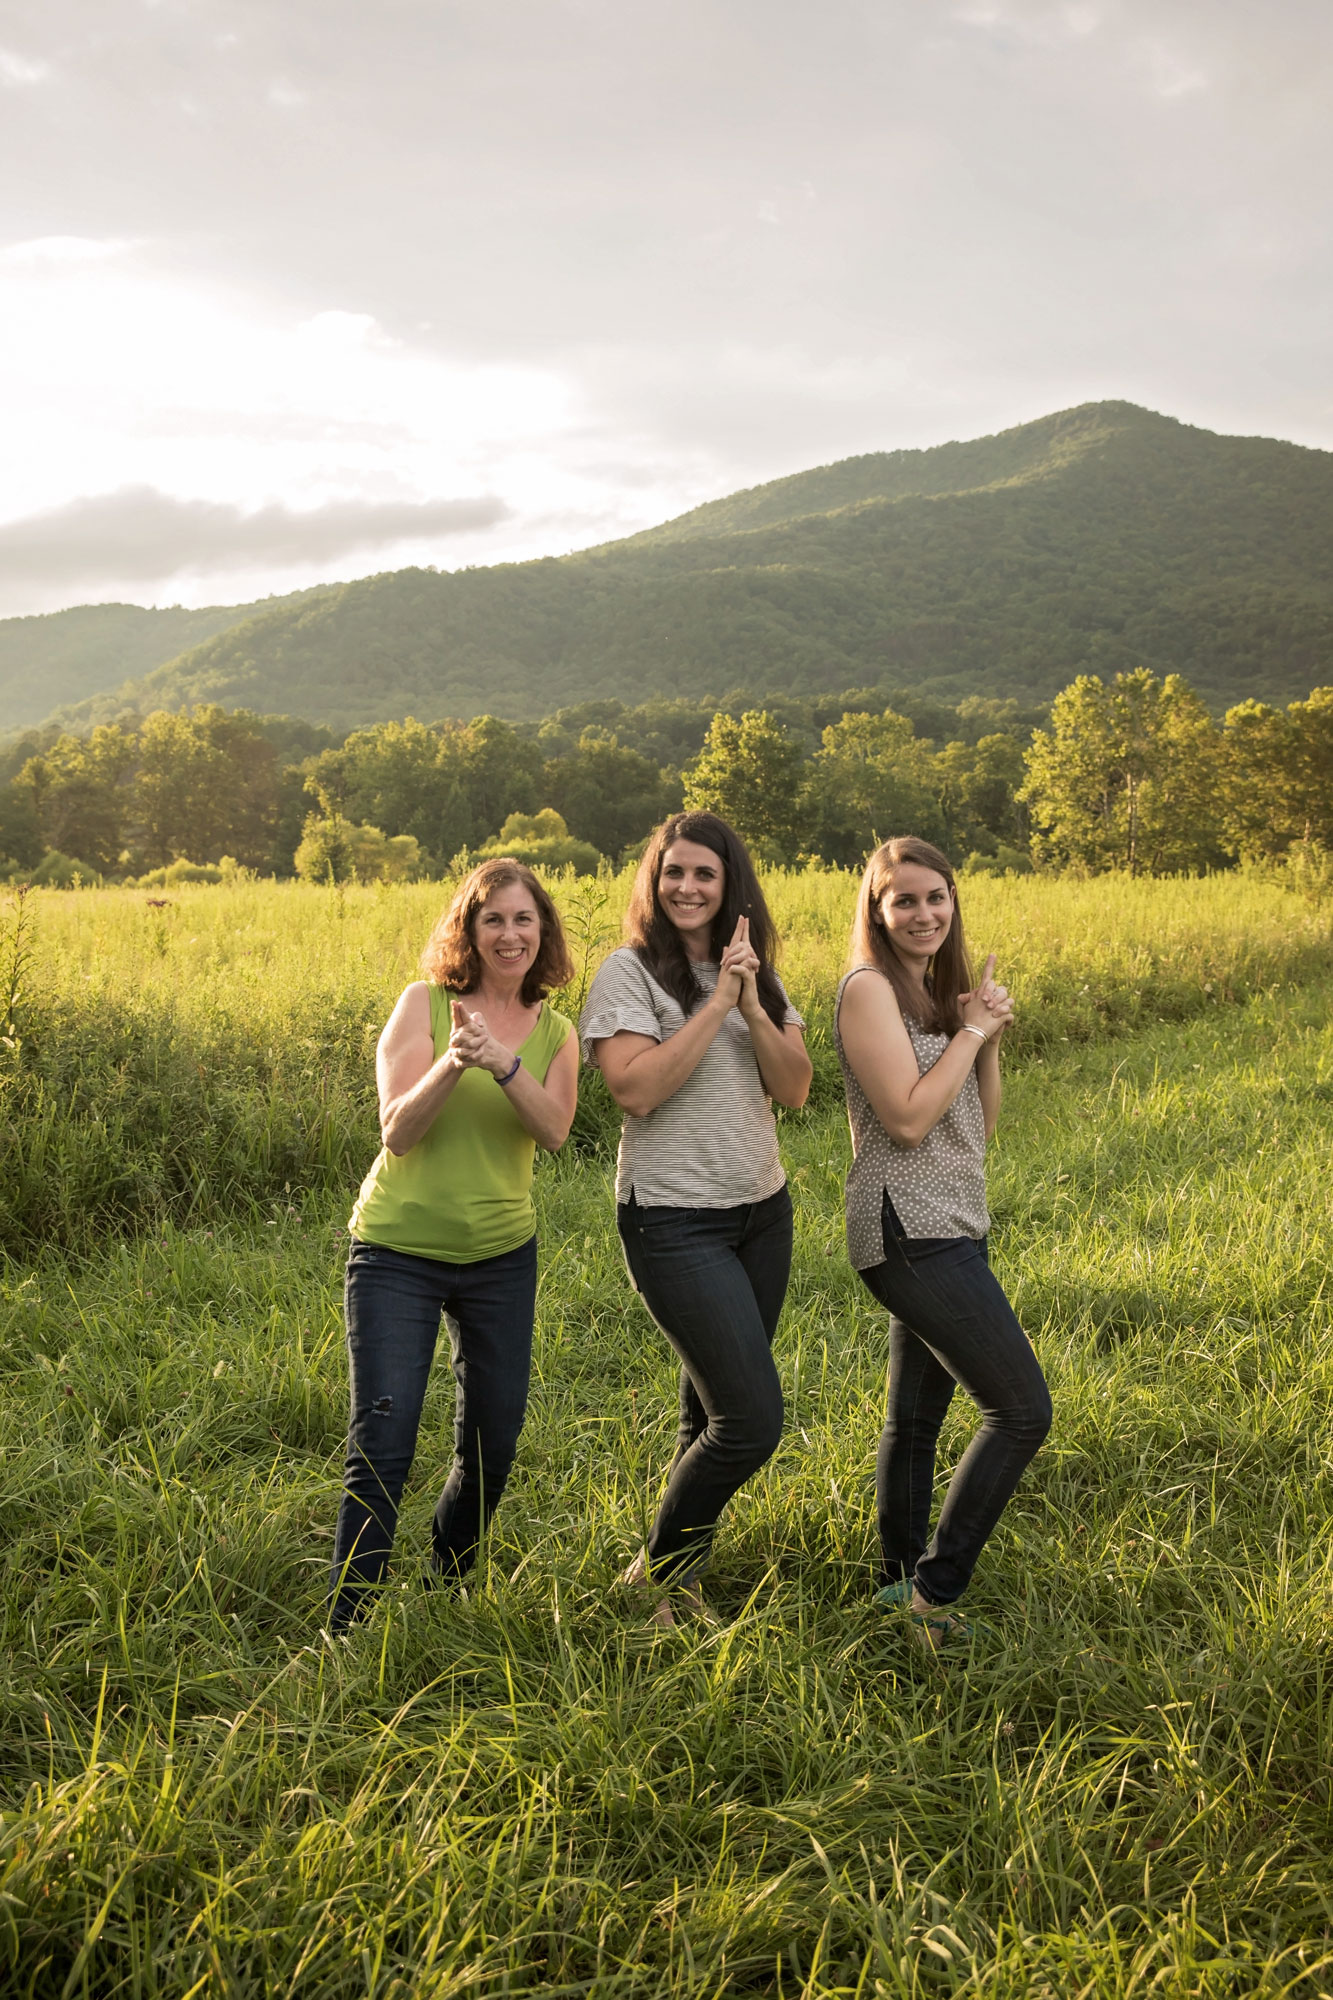 charlies-angels-pose-photographer-smoky-mountains.jpg